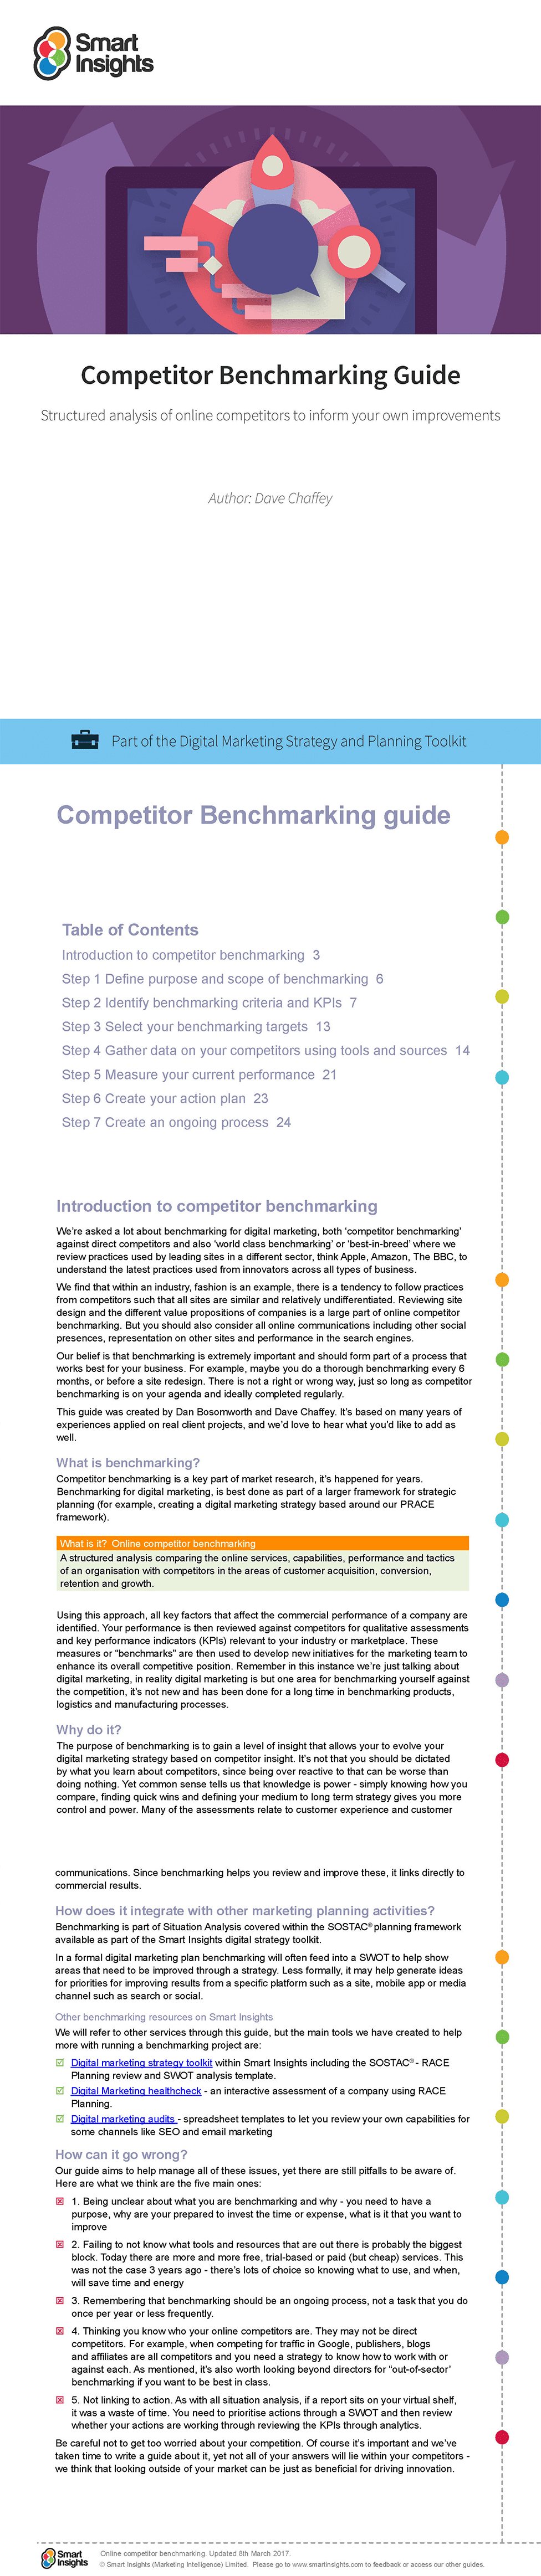 Competitor benchmarking guide smart insights part of the digital marketing strategy and planning toolkit learn more fandeluxe Choice Image